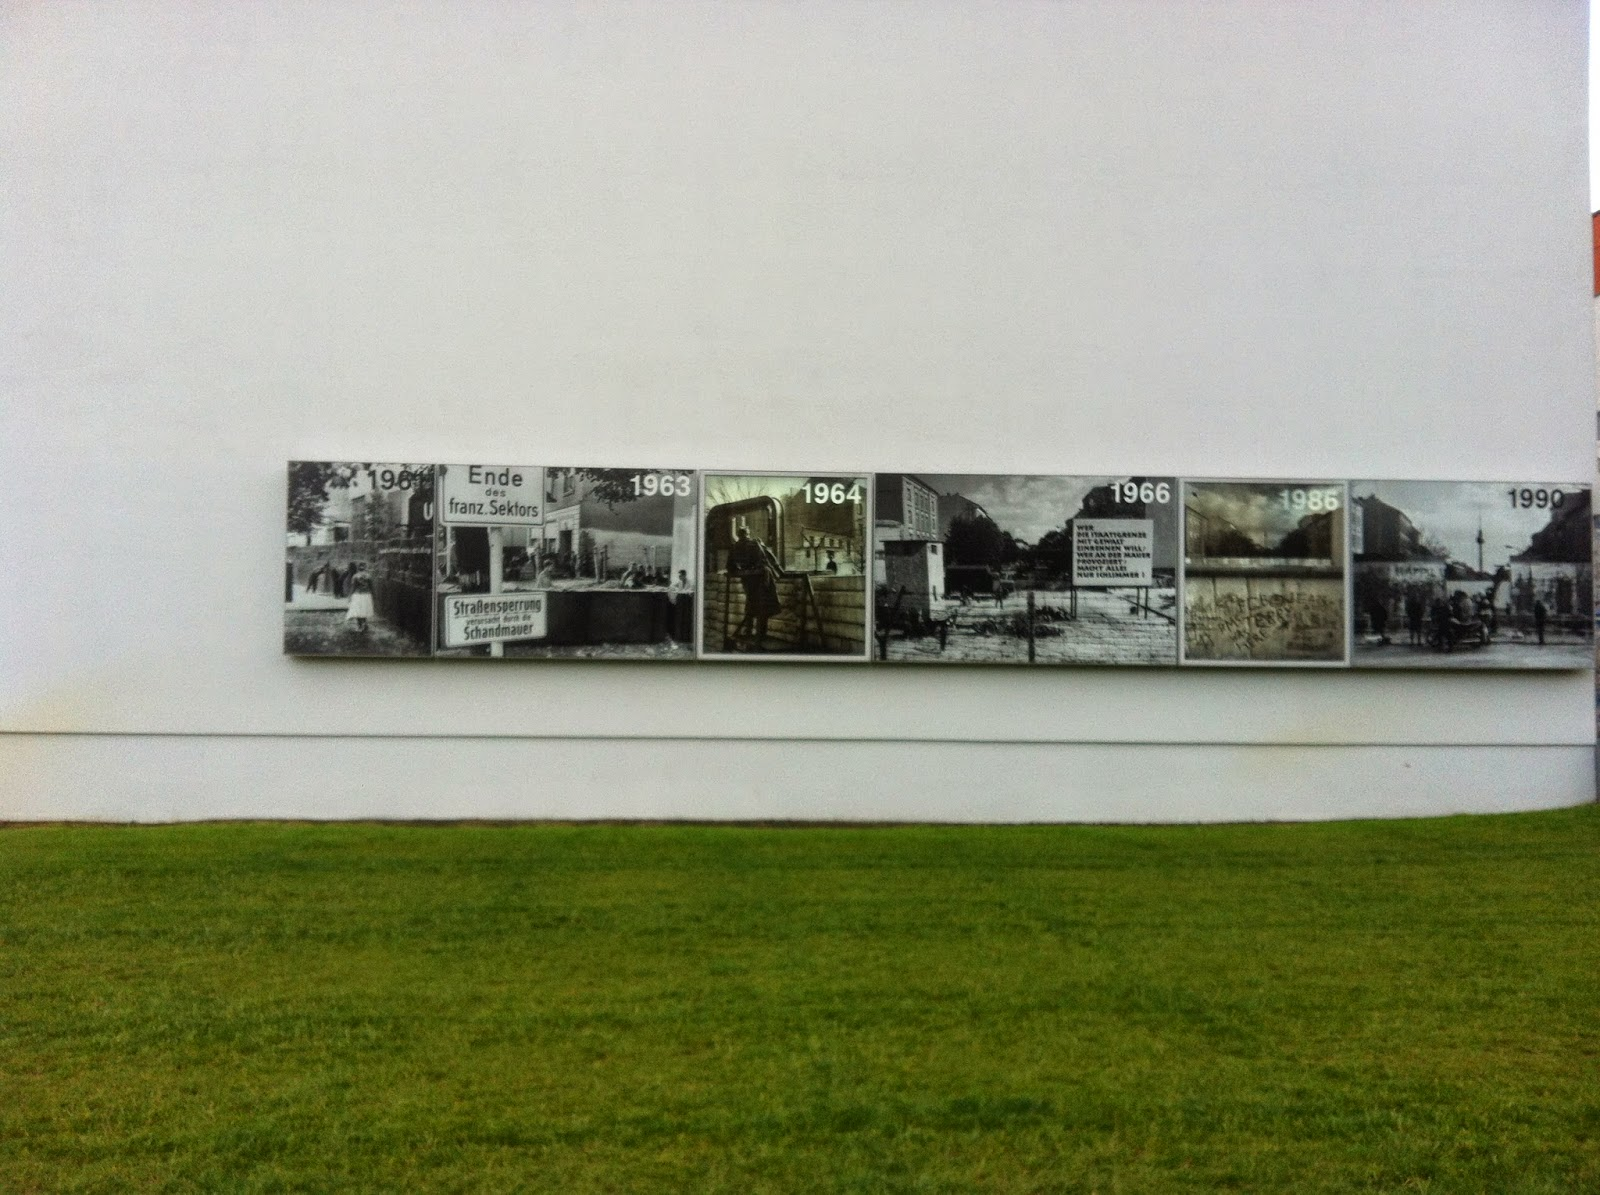 The minimalist outdoor displays highlighting moments related to the history of the wall.